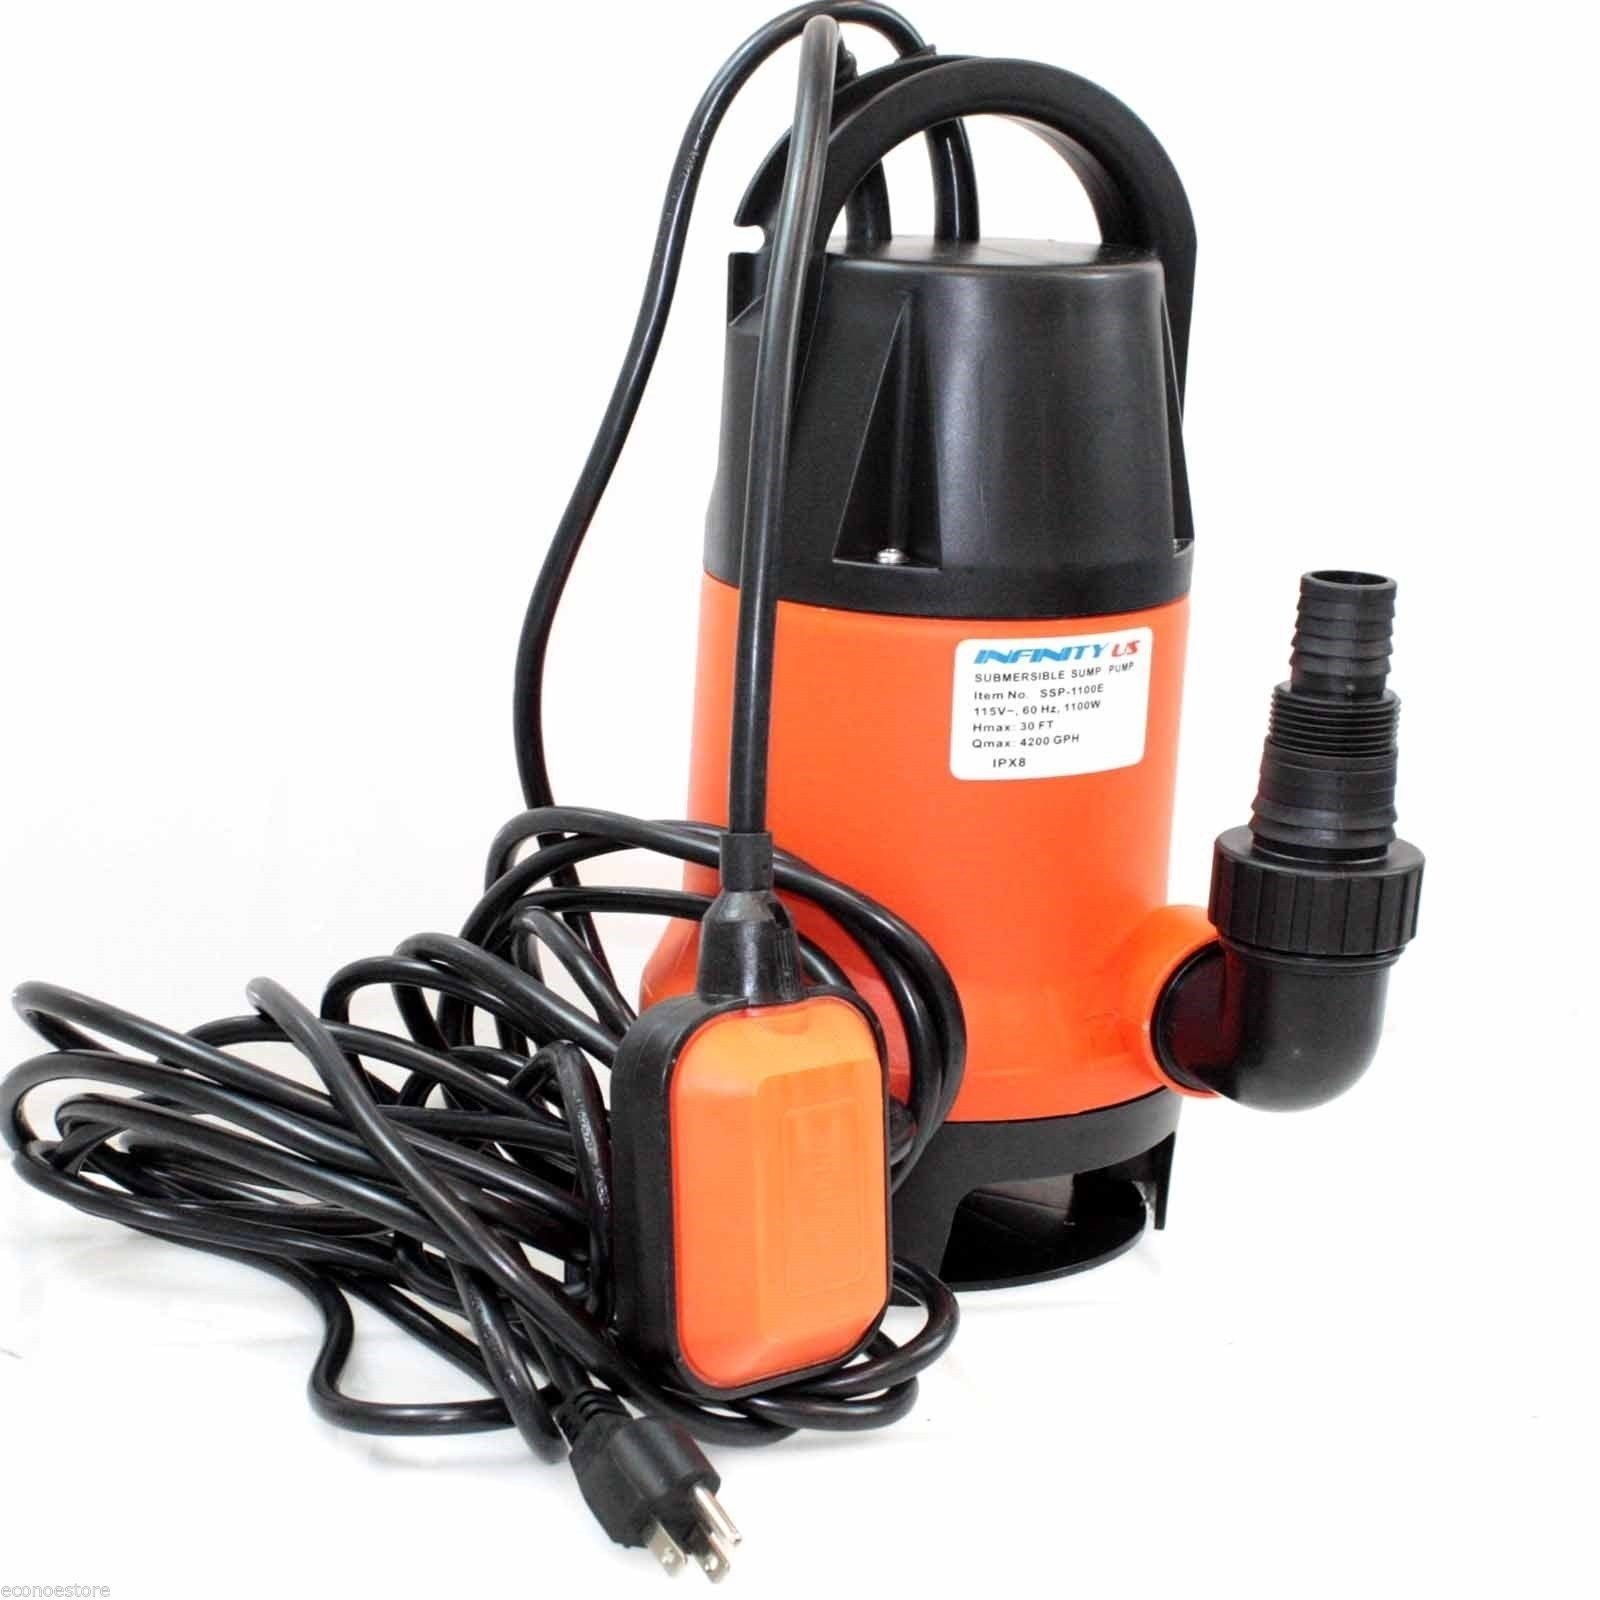 UL 1.5HP 1100W Submersible Pool Pond Drain Sub Water Pump 4200GPH By Allgoodsdelight365 by allgoodsdelight365